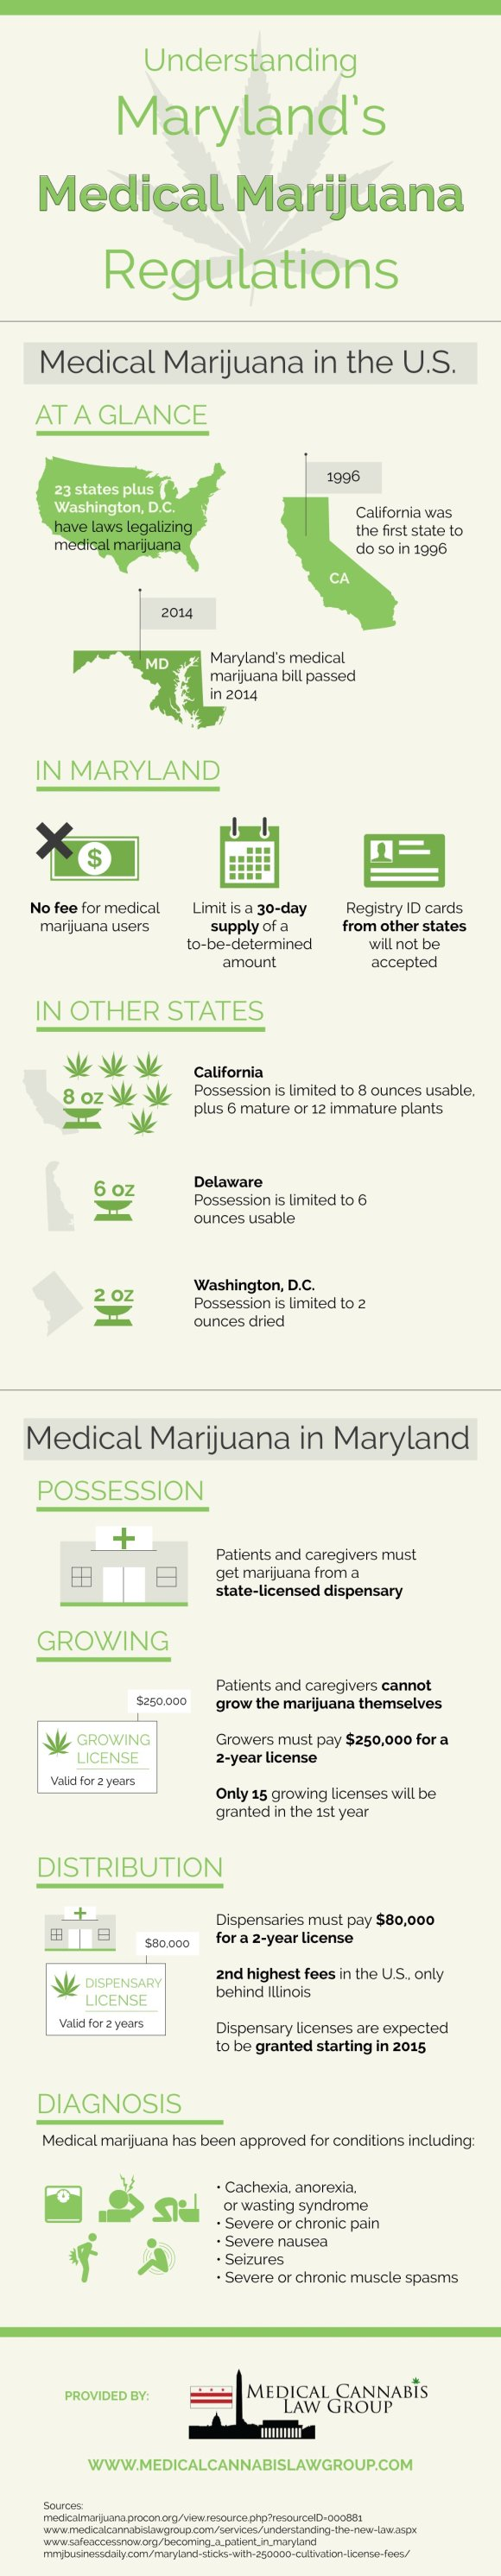 Maryland Medical Marijuana Regulations Infographic